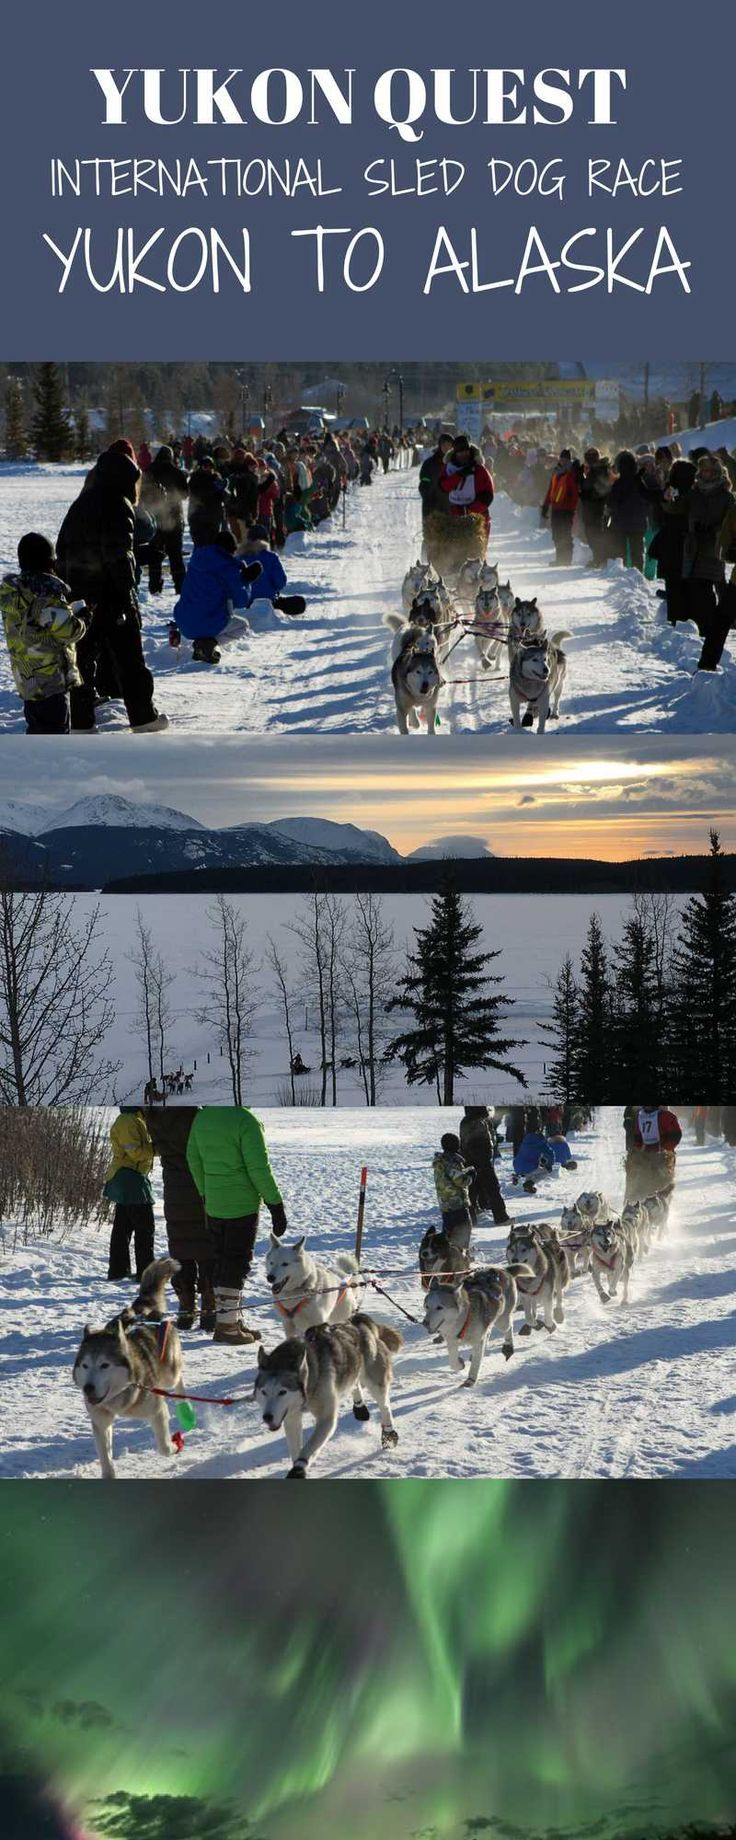 The Yukon Quest is a premier dog sled race between Whitehorse in the Yukon in Canada and Fairbanks, Alaska.